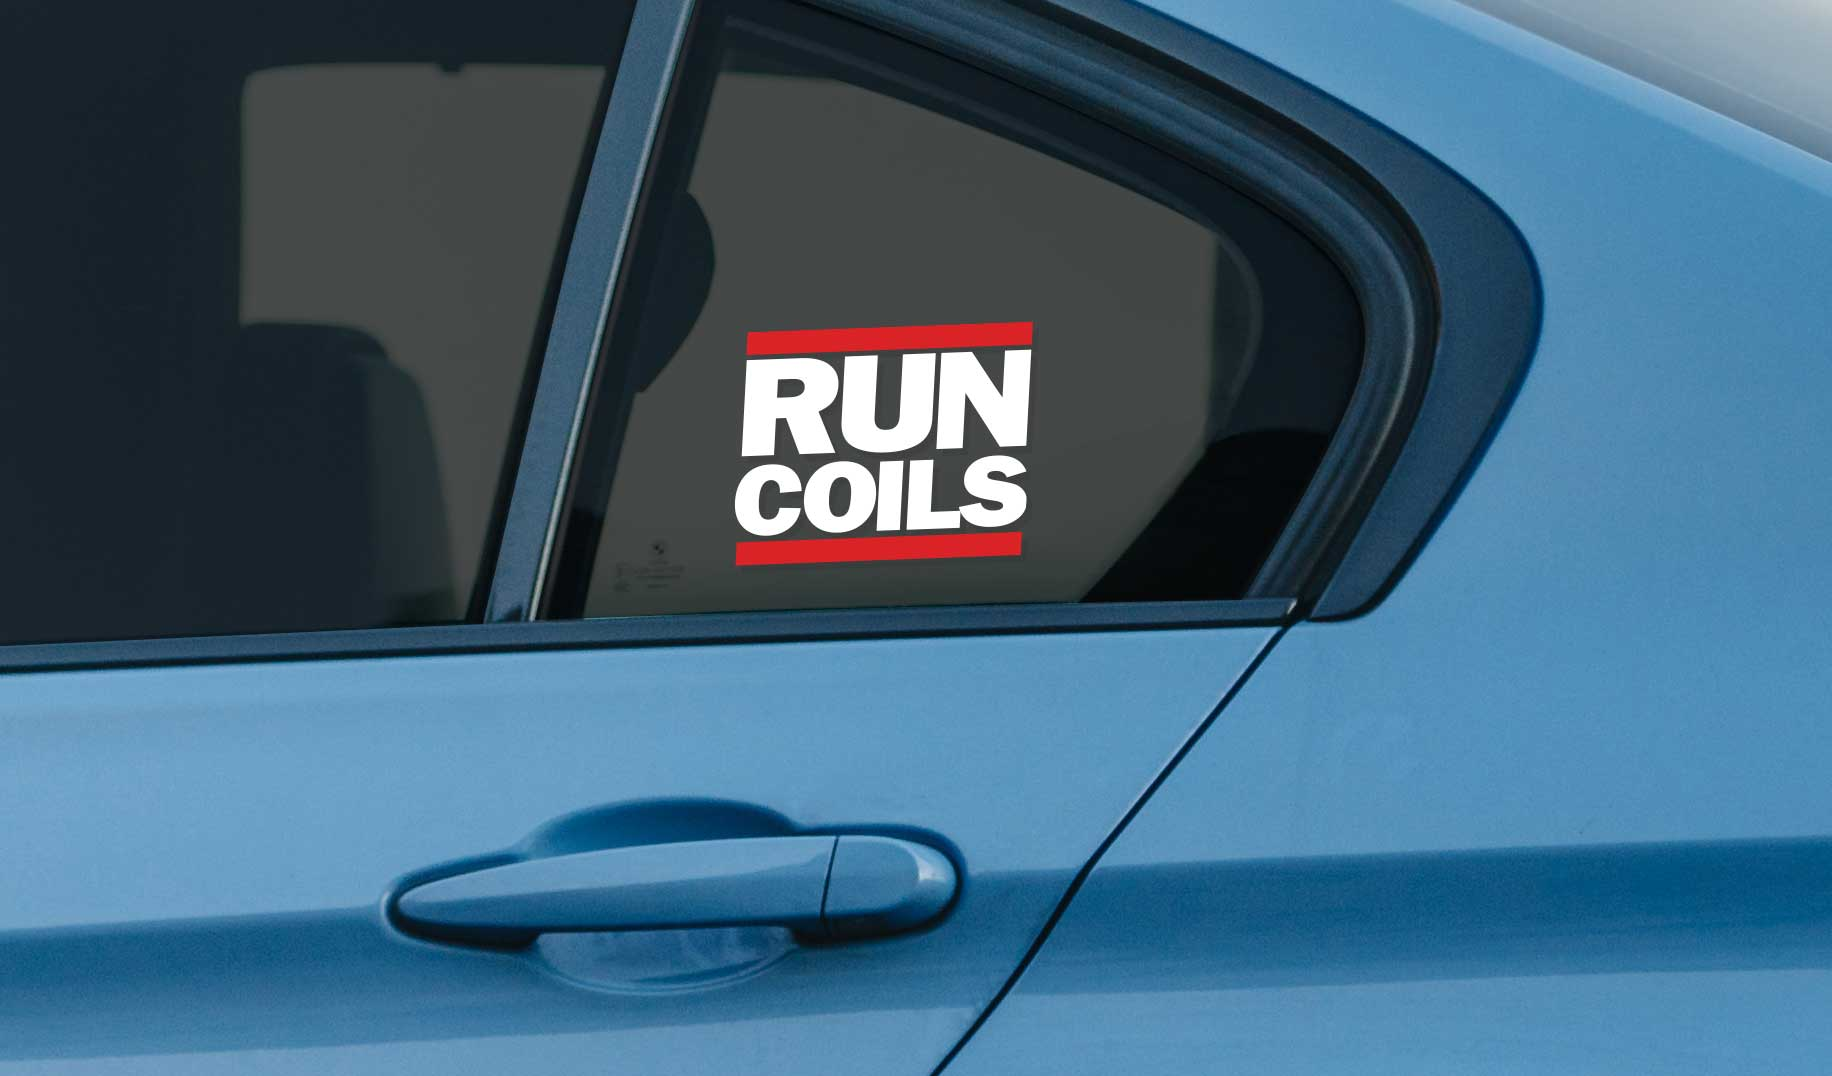 Run Coils window vinyl sticker for stanced lowered cars